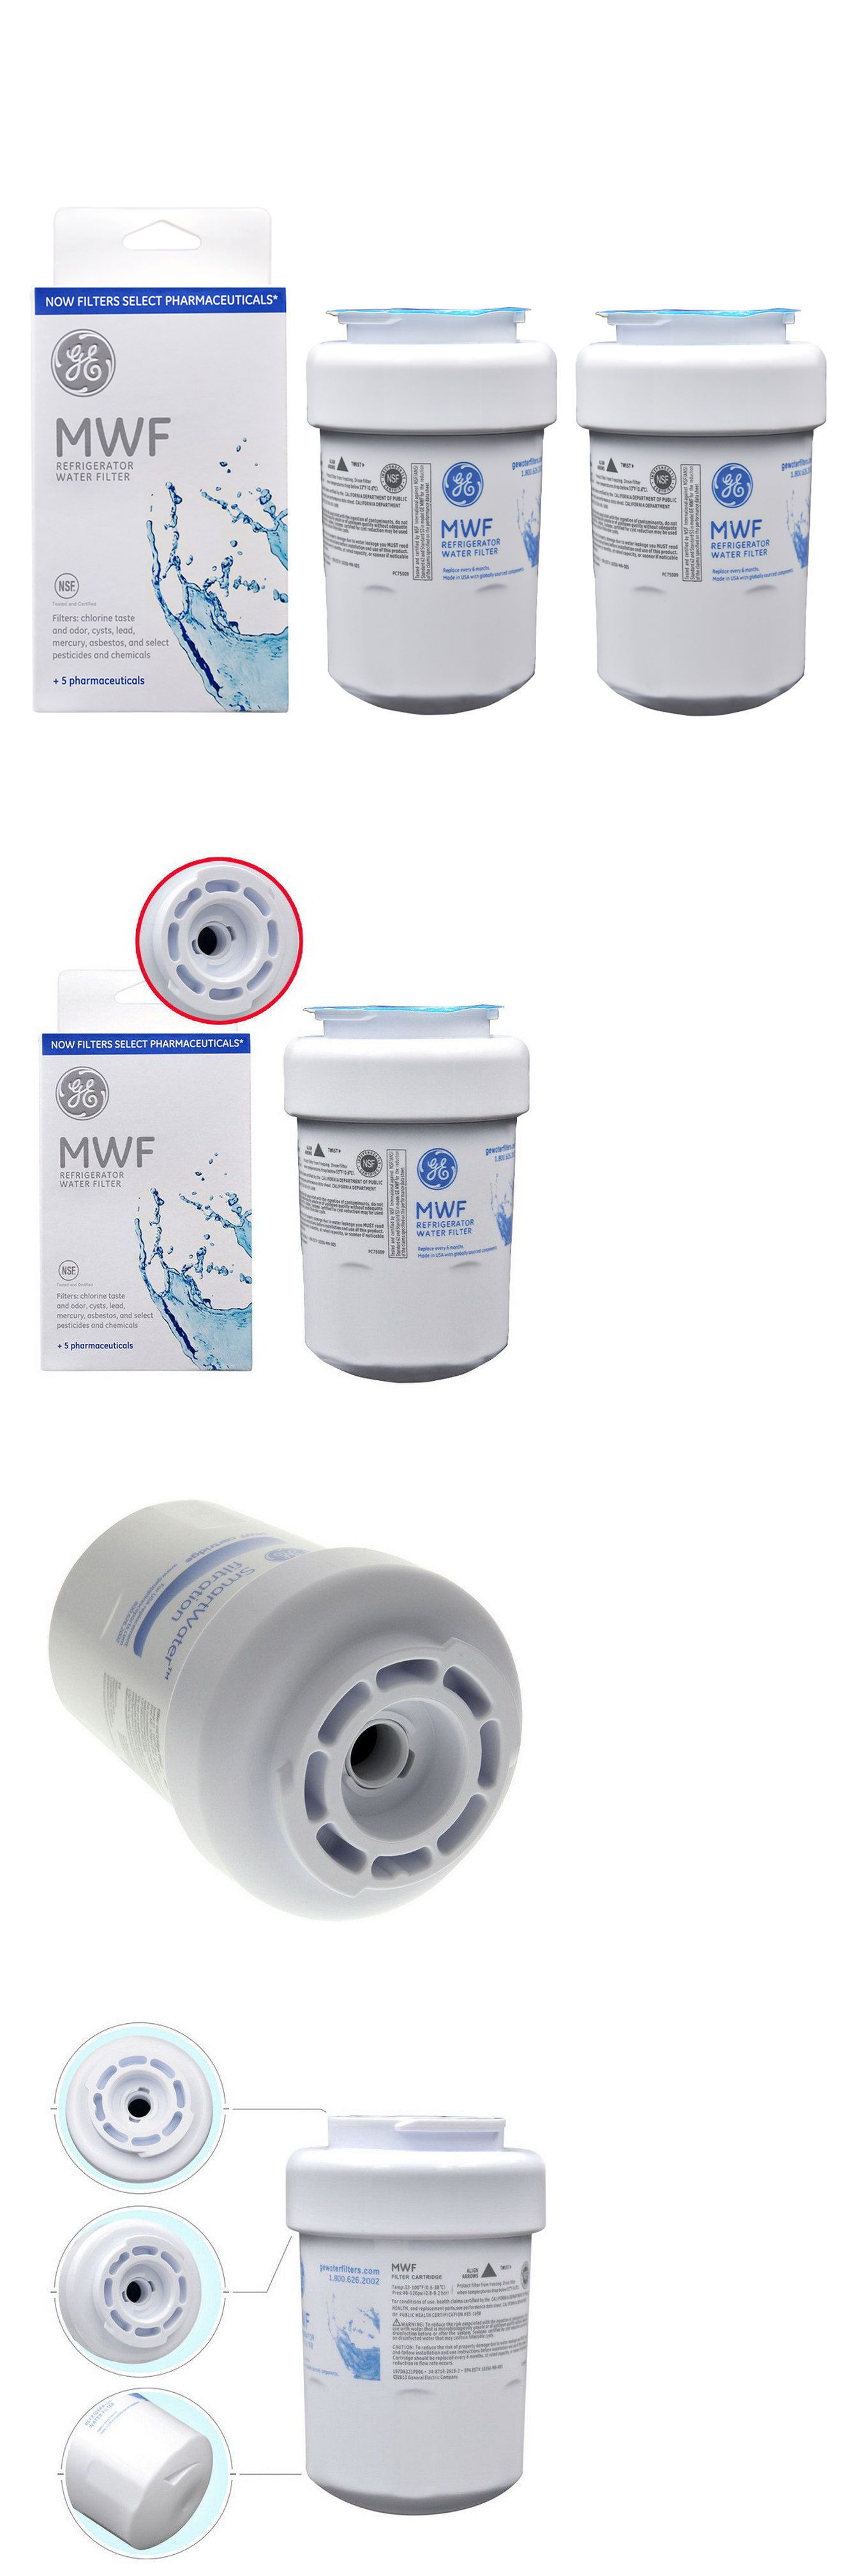 Water Filters 20684 Ge General Electric Mwf Replacement Refrigerator Water Filter 2pack Buy It Now Refrigerator Water Filter Water Filter General Electric